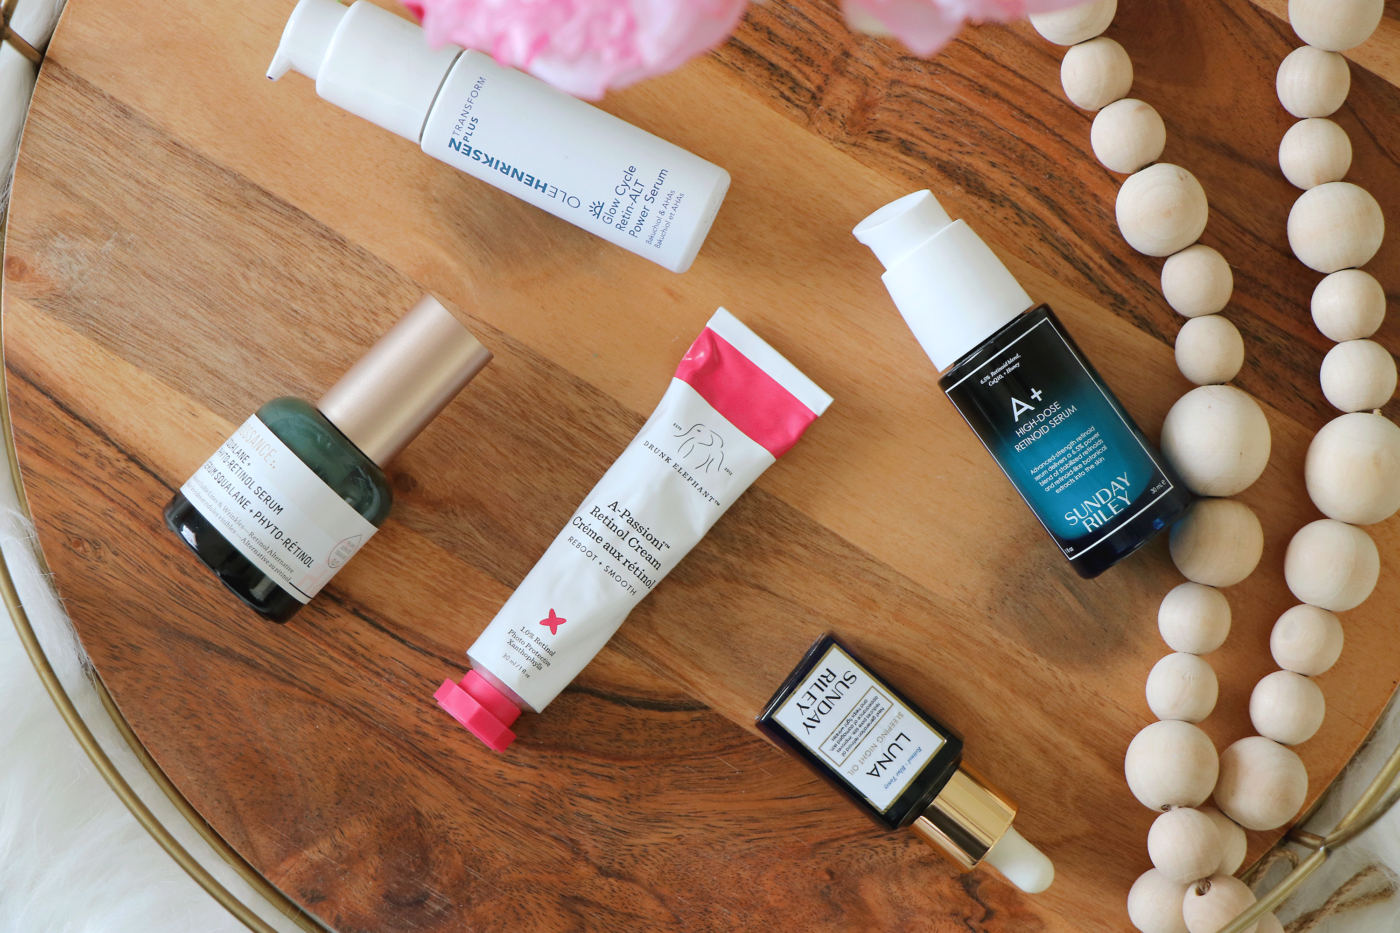 So you want to use a retinol but aren't sure where to start? Makeup Life and Love is sharing the rundown on why and how to use a retinol effectively. Click to see the how's and why's of retinol HERE!